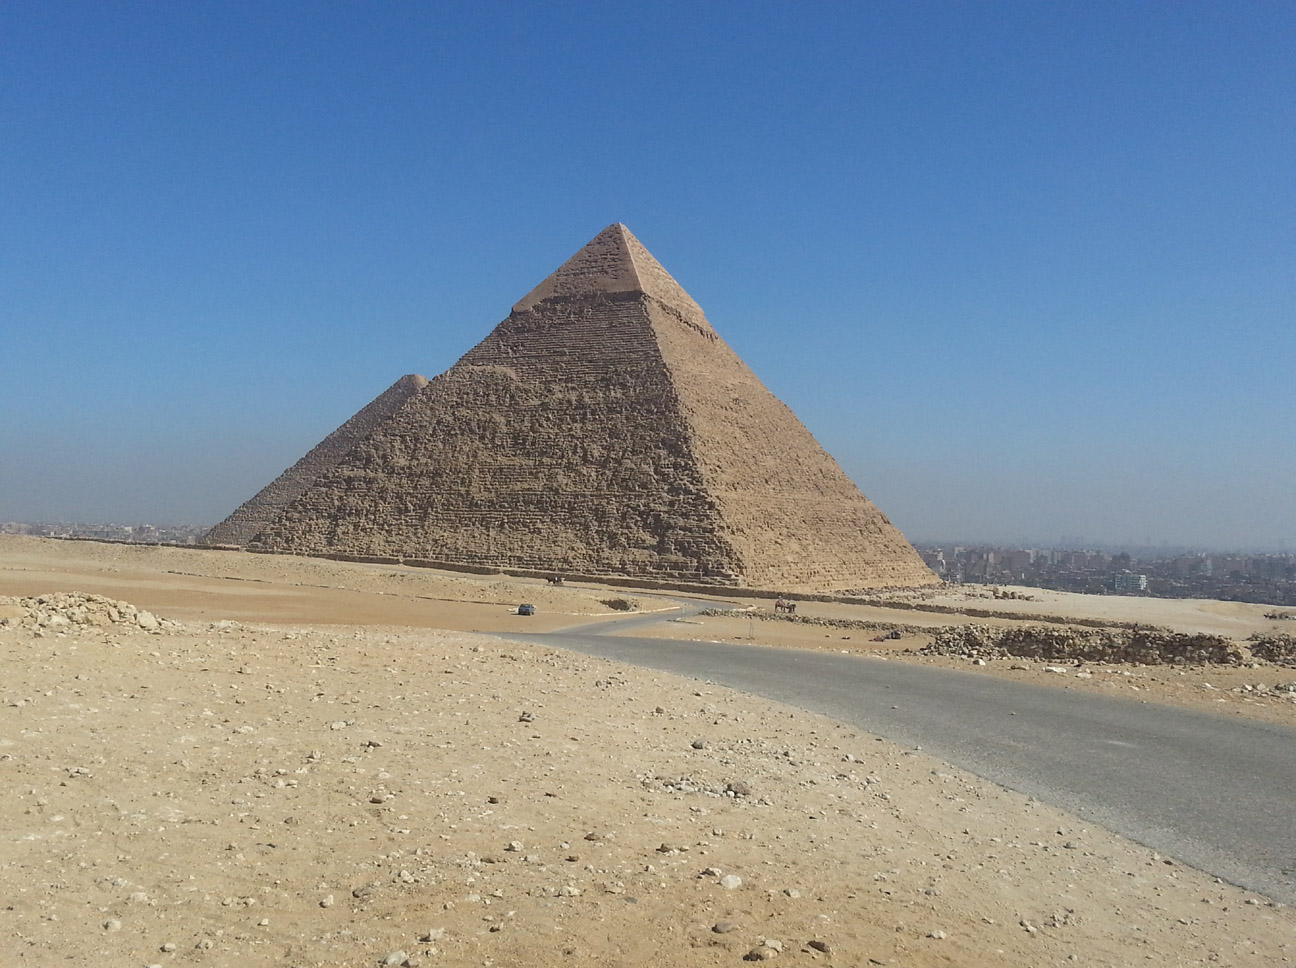 The second largest pyramid in Giza